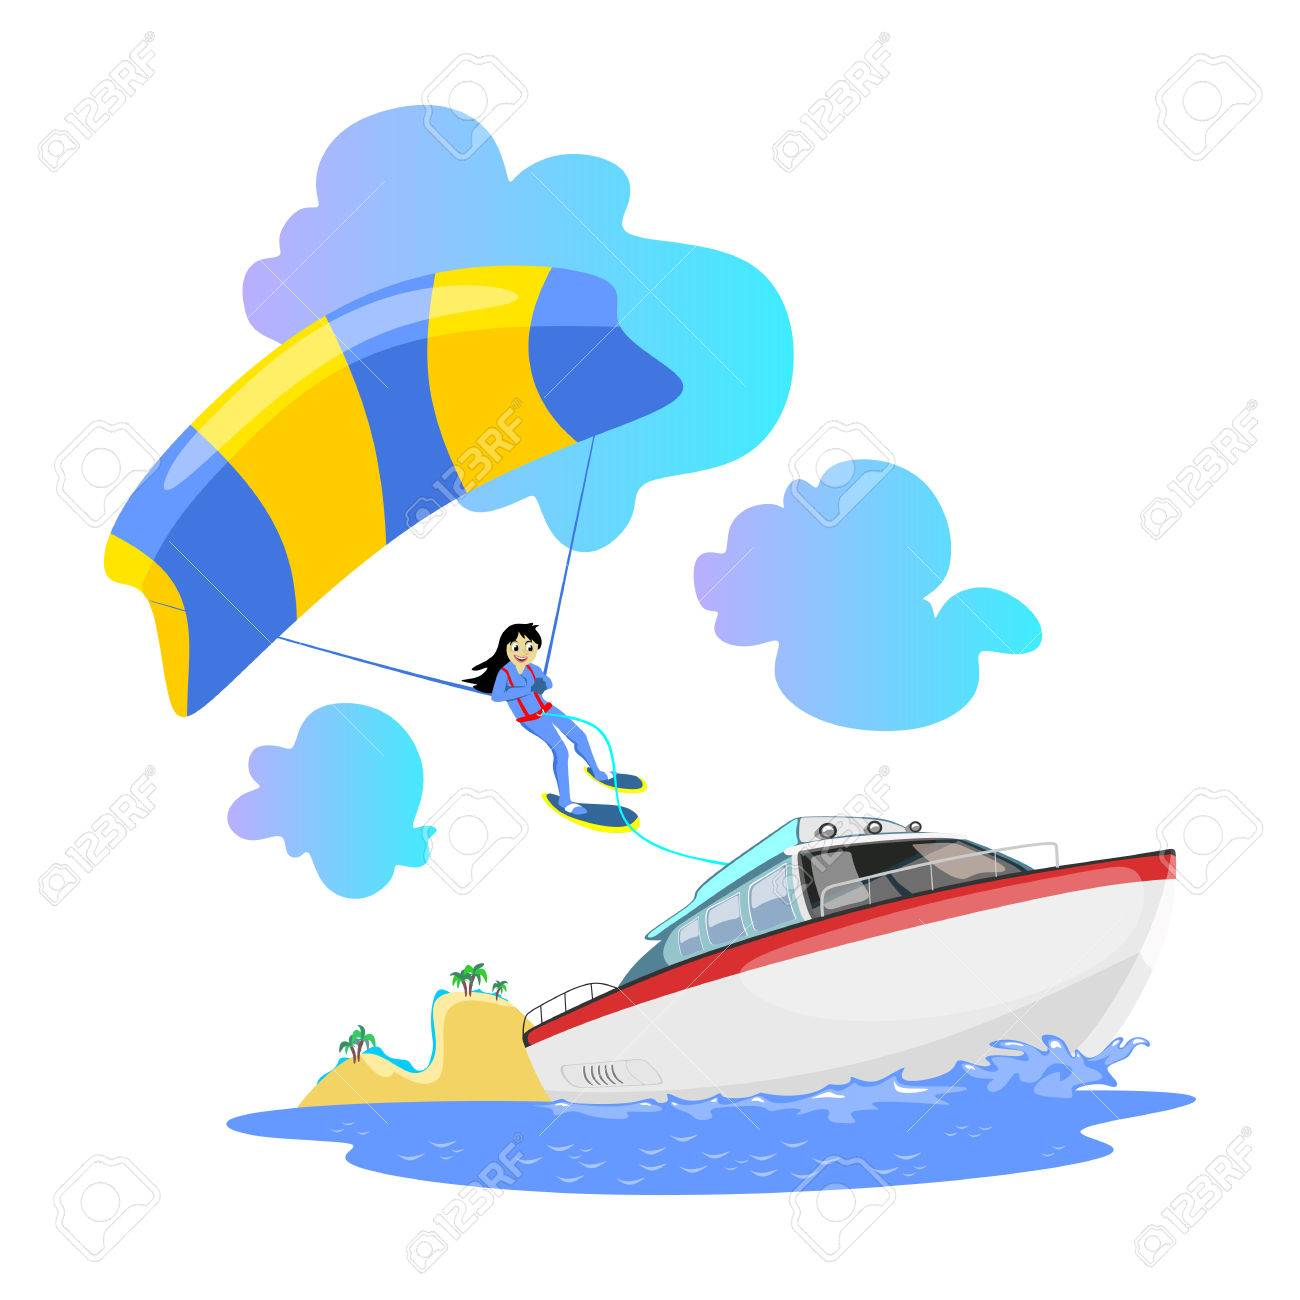 Parasailing water extreme sports backgrounds, isolated design...